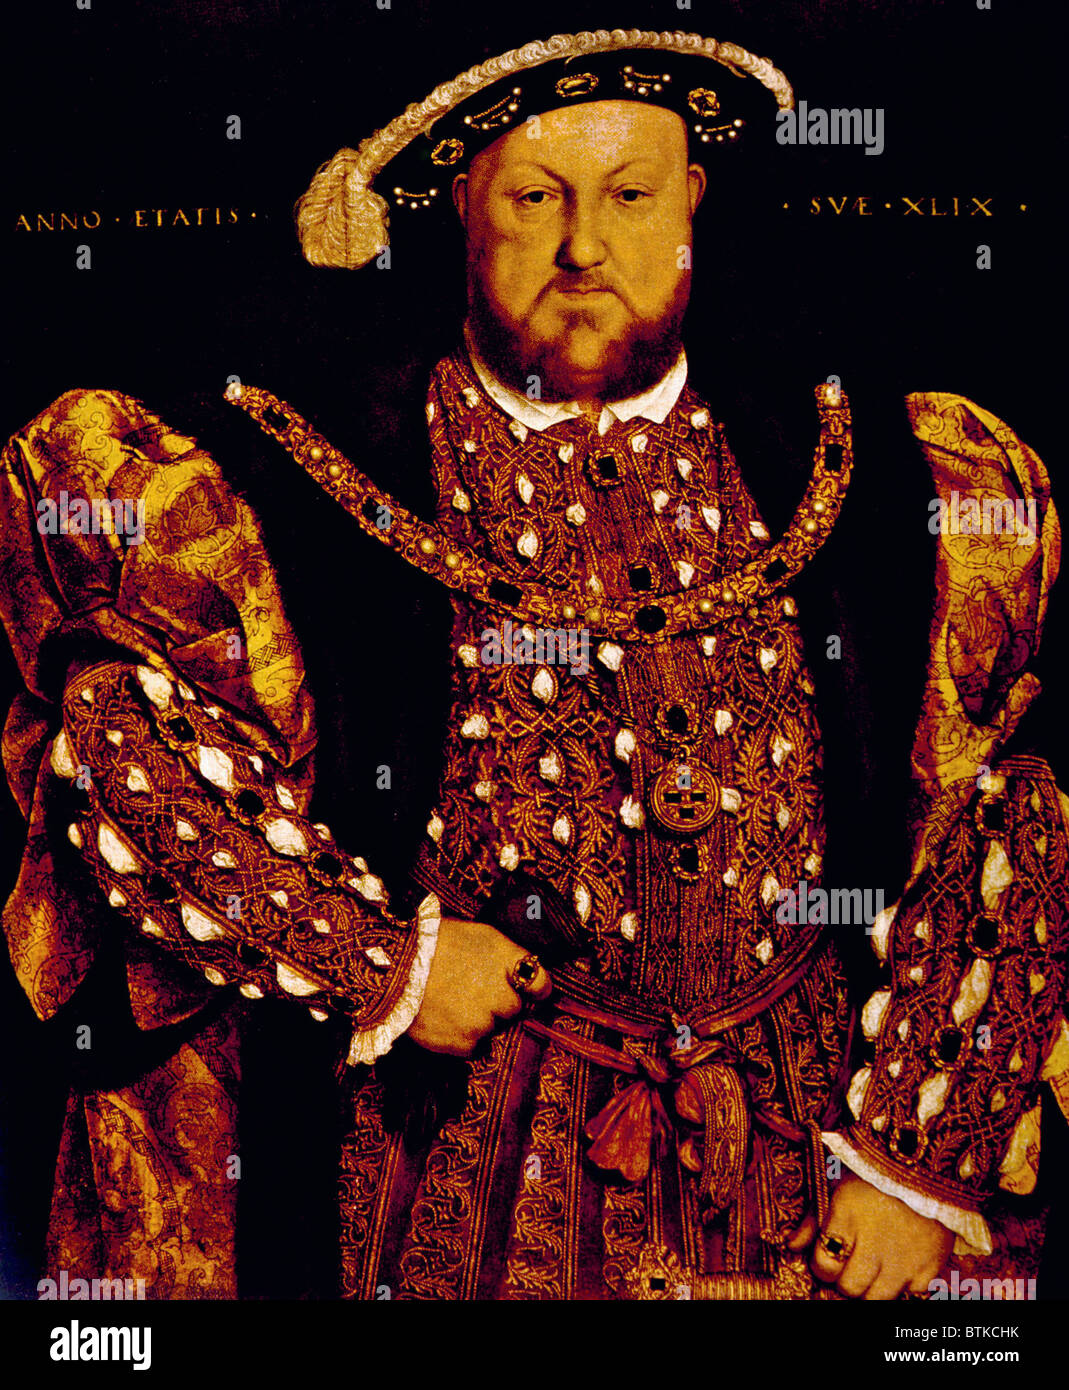 King Henry VIII (1491-1547), King of England, and Ireland, from 1509 until his death. Portrait by Hans Holbein the - Stock Image